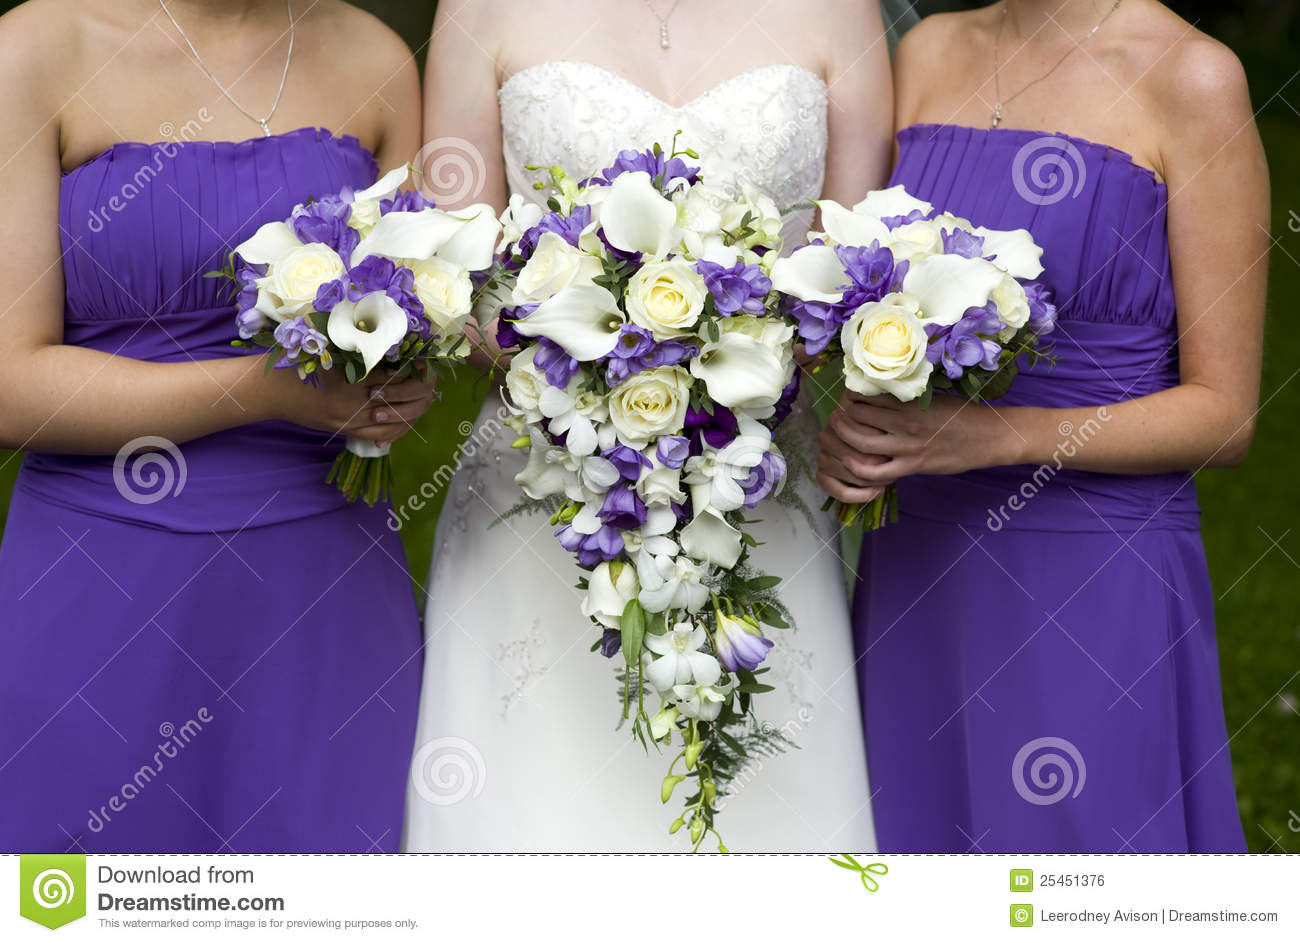 bride and bridesmaids with wedding bouquets royalty free stock image